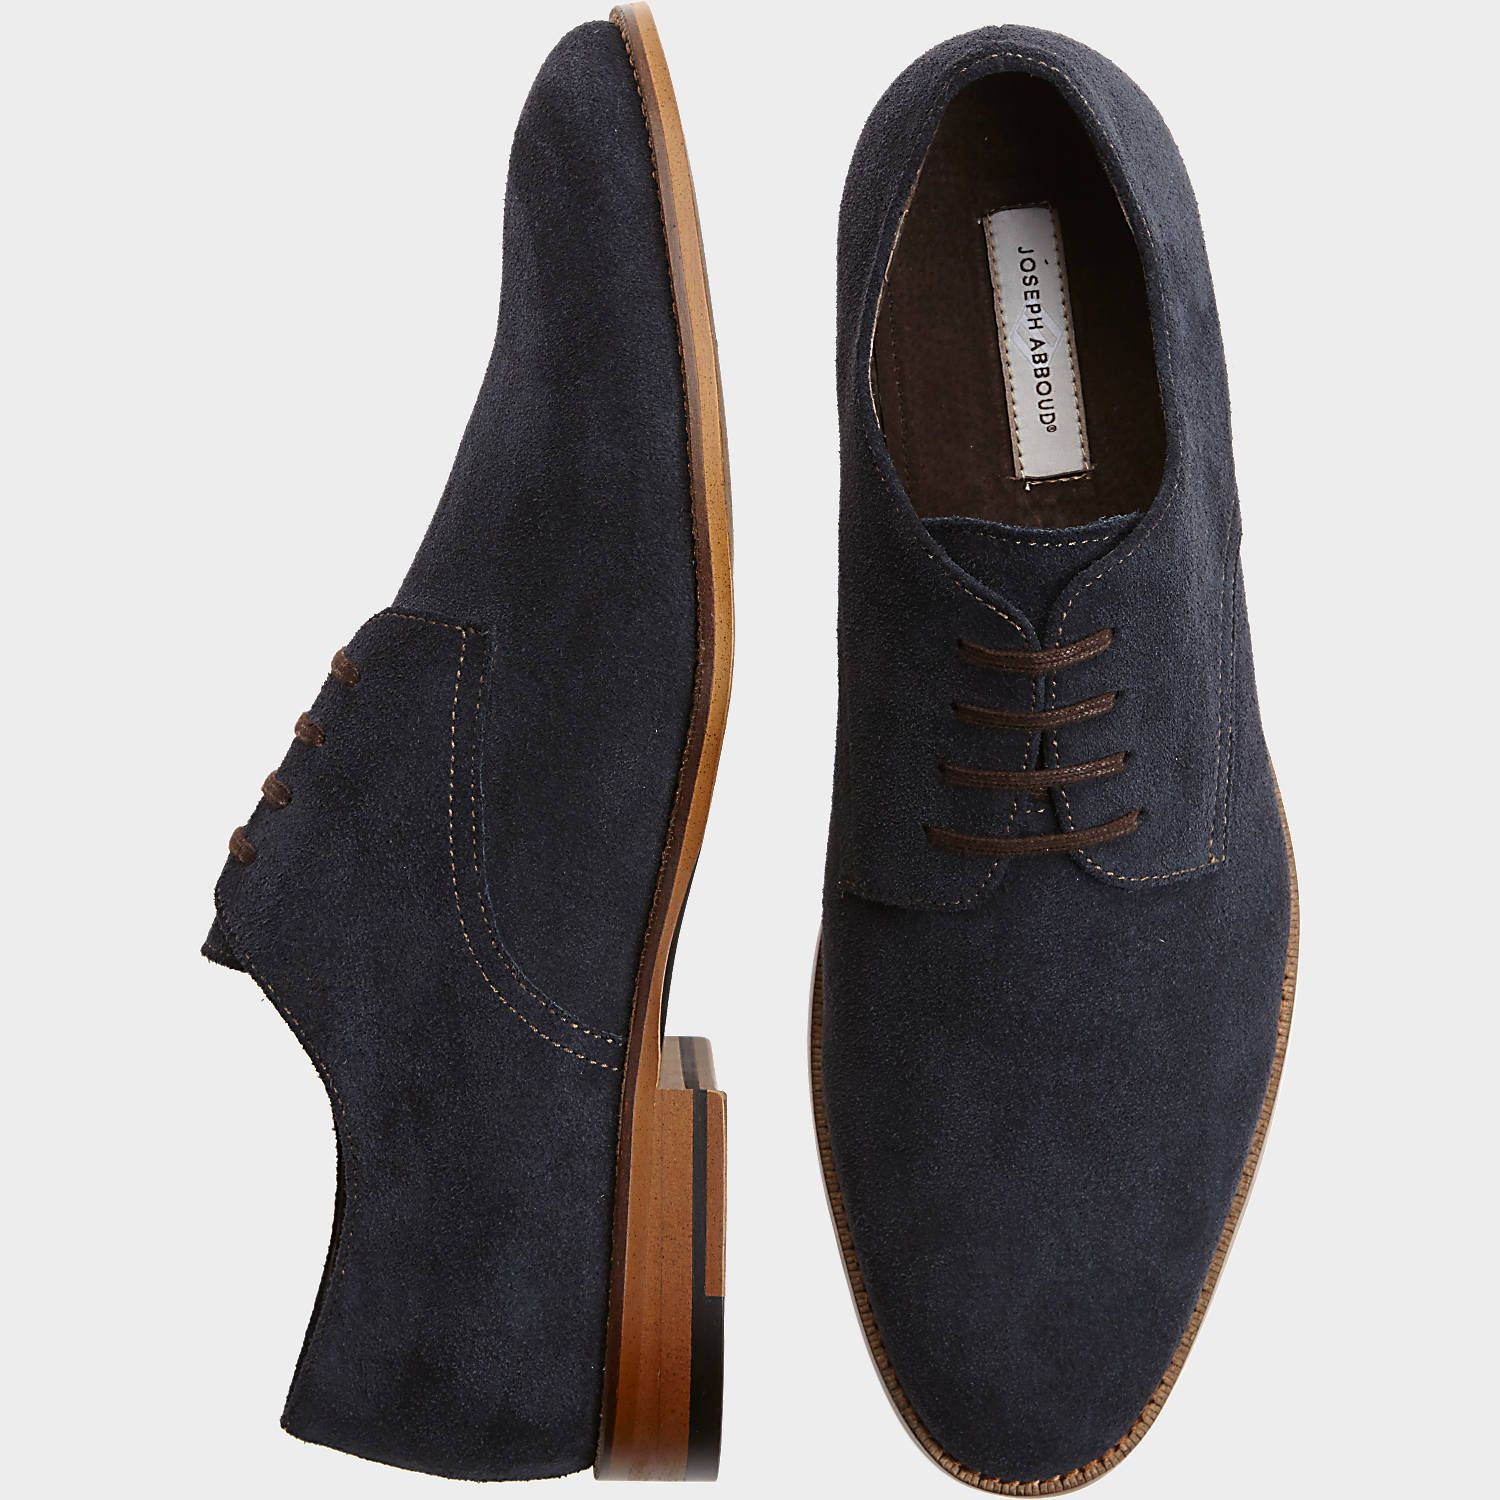 Suede oxford shoes, Mens casual shoes